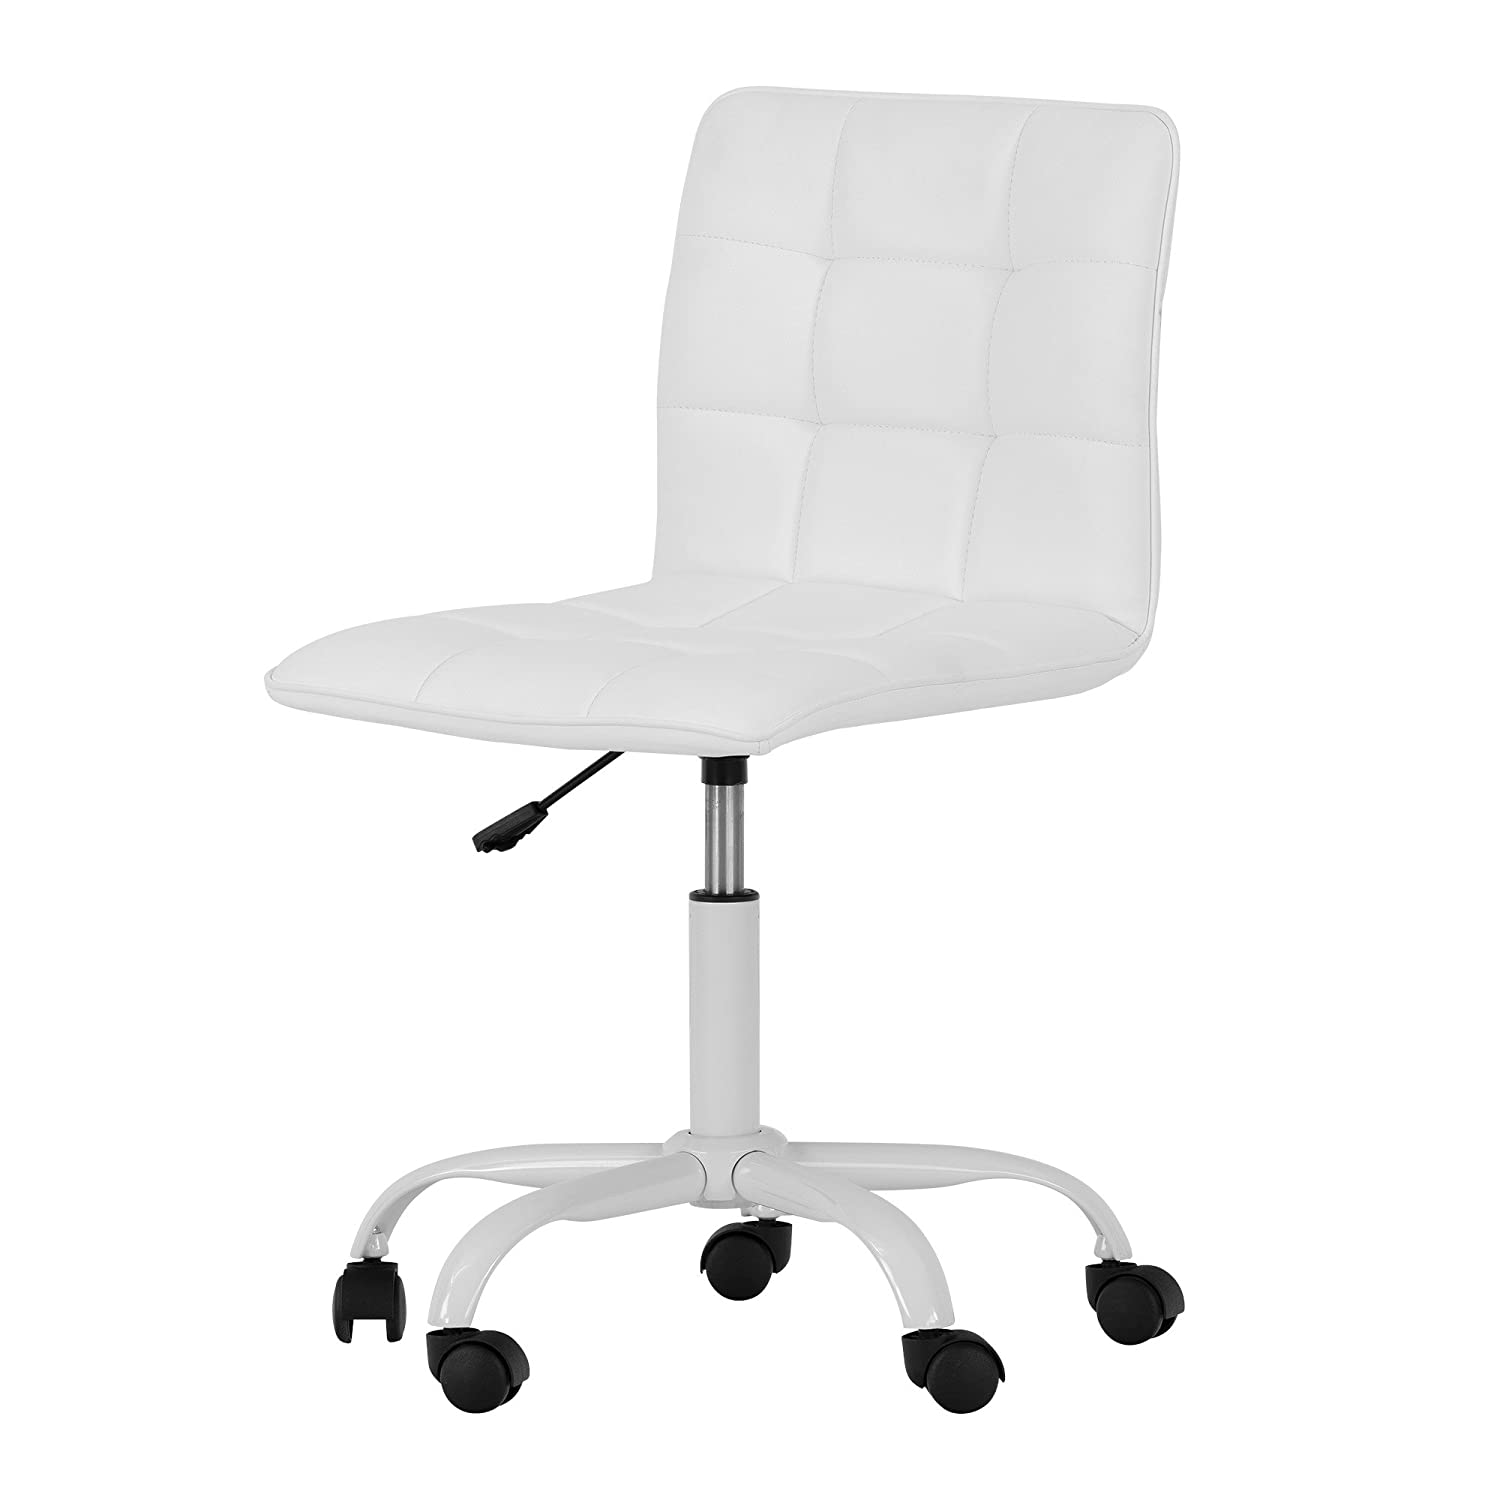 Amazon com annexe white office chair with quilted seat ergonomic executive office chair mid back chair for home office by south shore kitchen dining